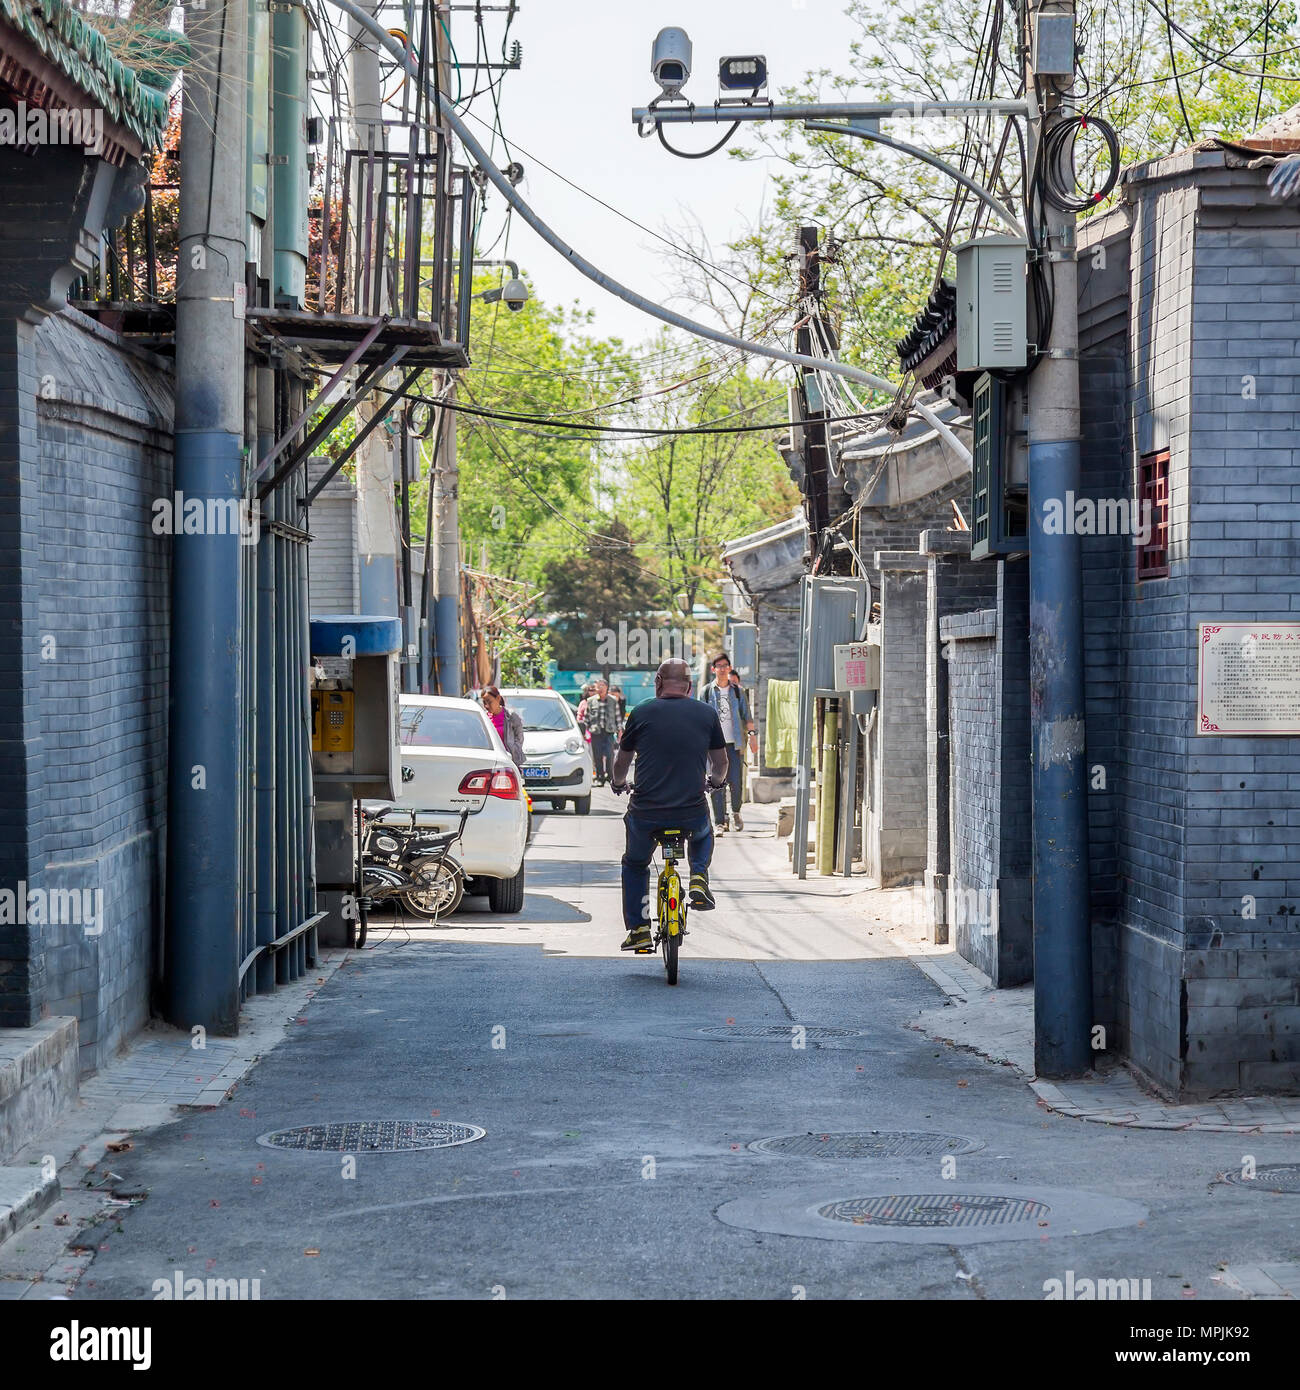 A Chinese man riding a bicycle on a backstreet in Beijing. Overlooked by a surveillance camera. - Stock Image